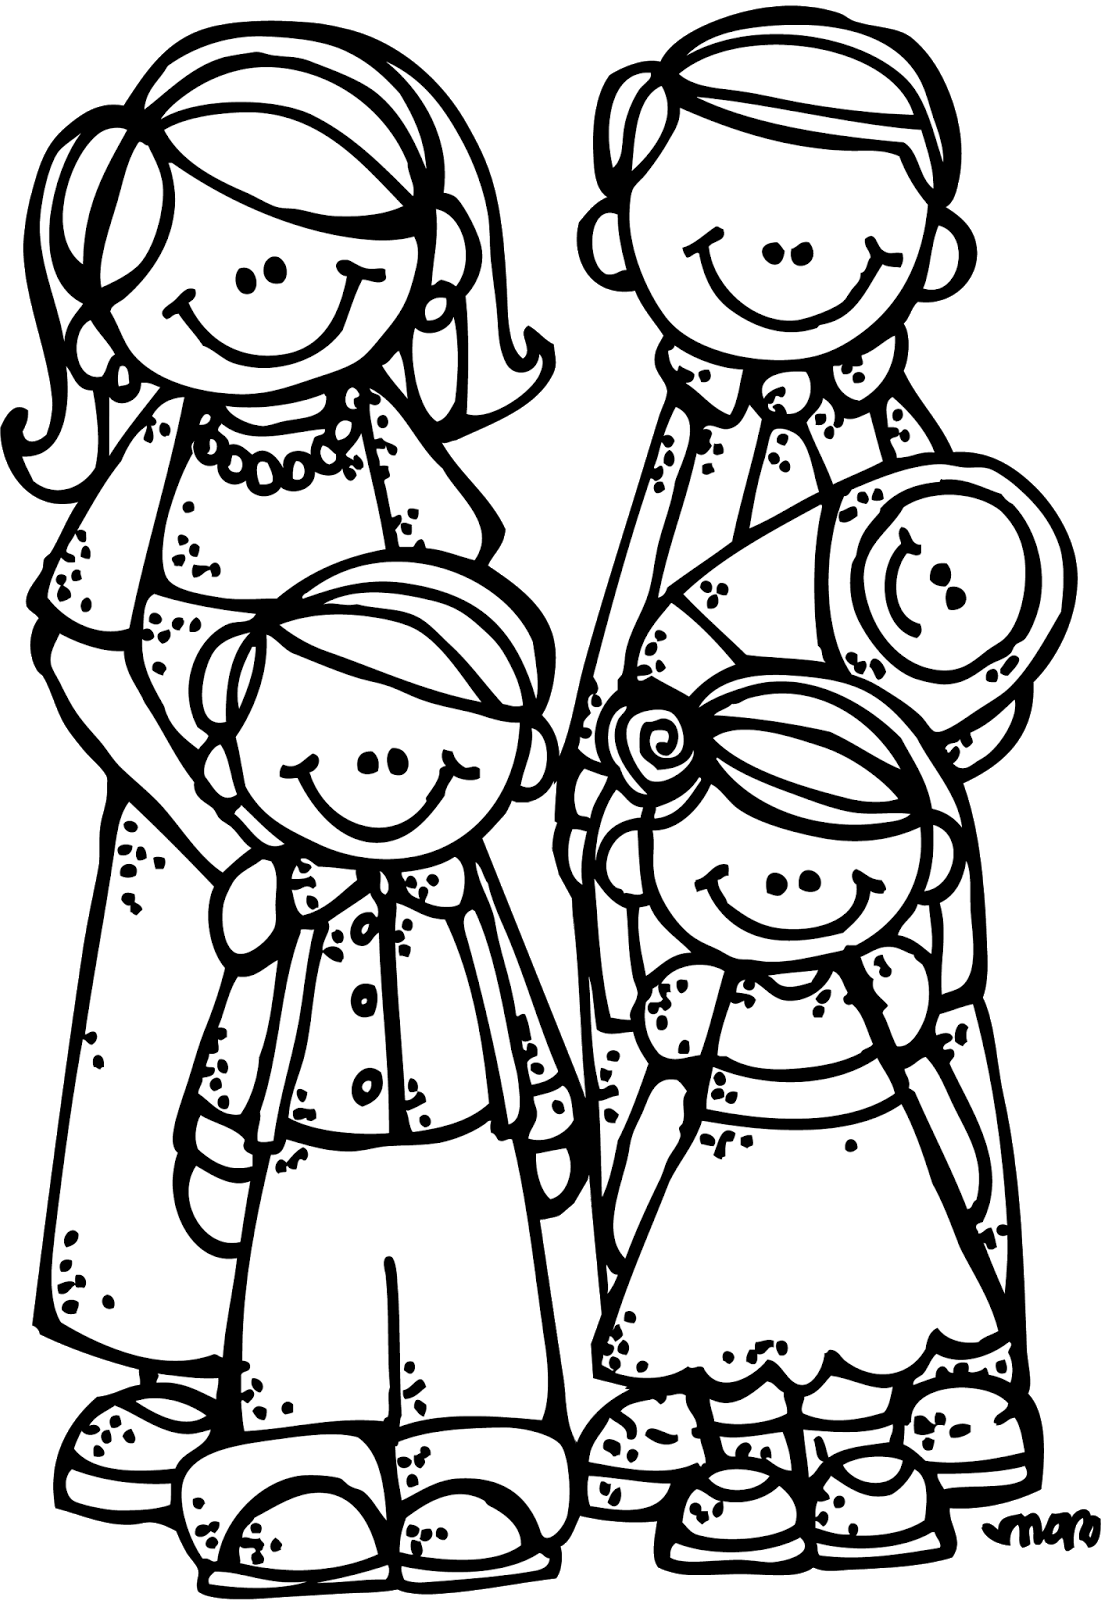 hight resolution of lds family clipart black and white clipartxtras throughout lds family clipart black and white 13021